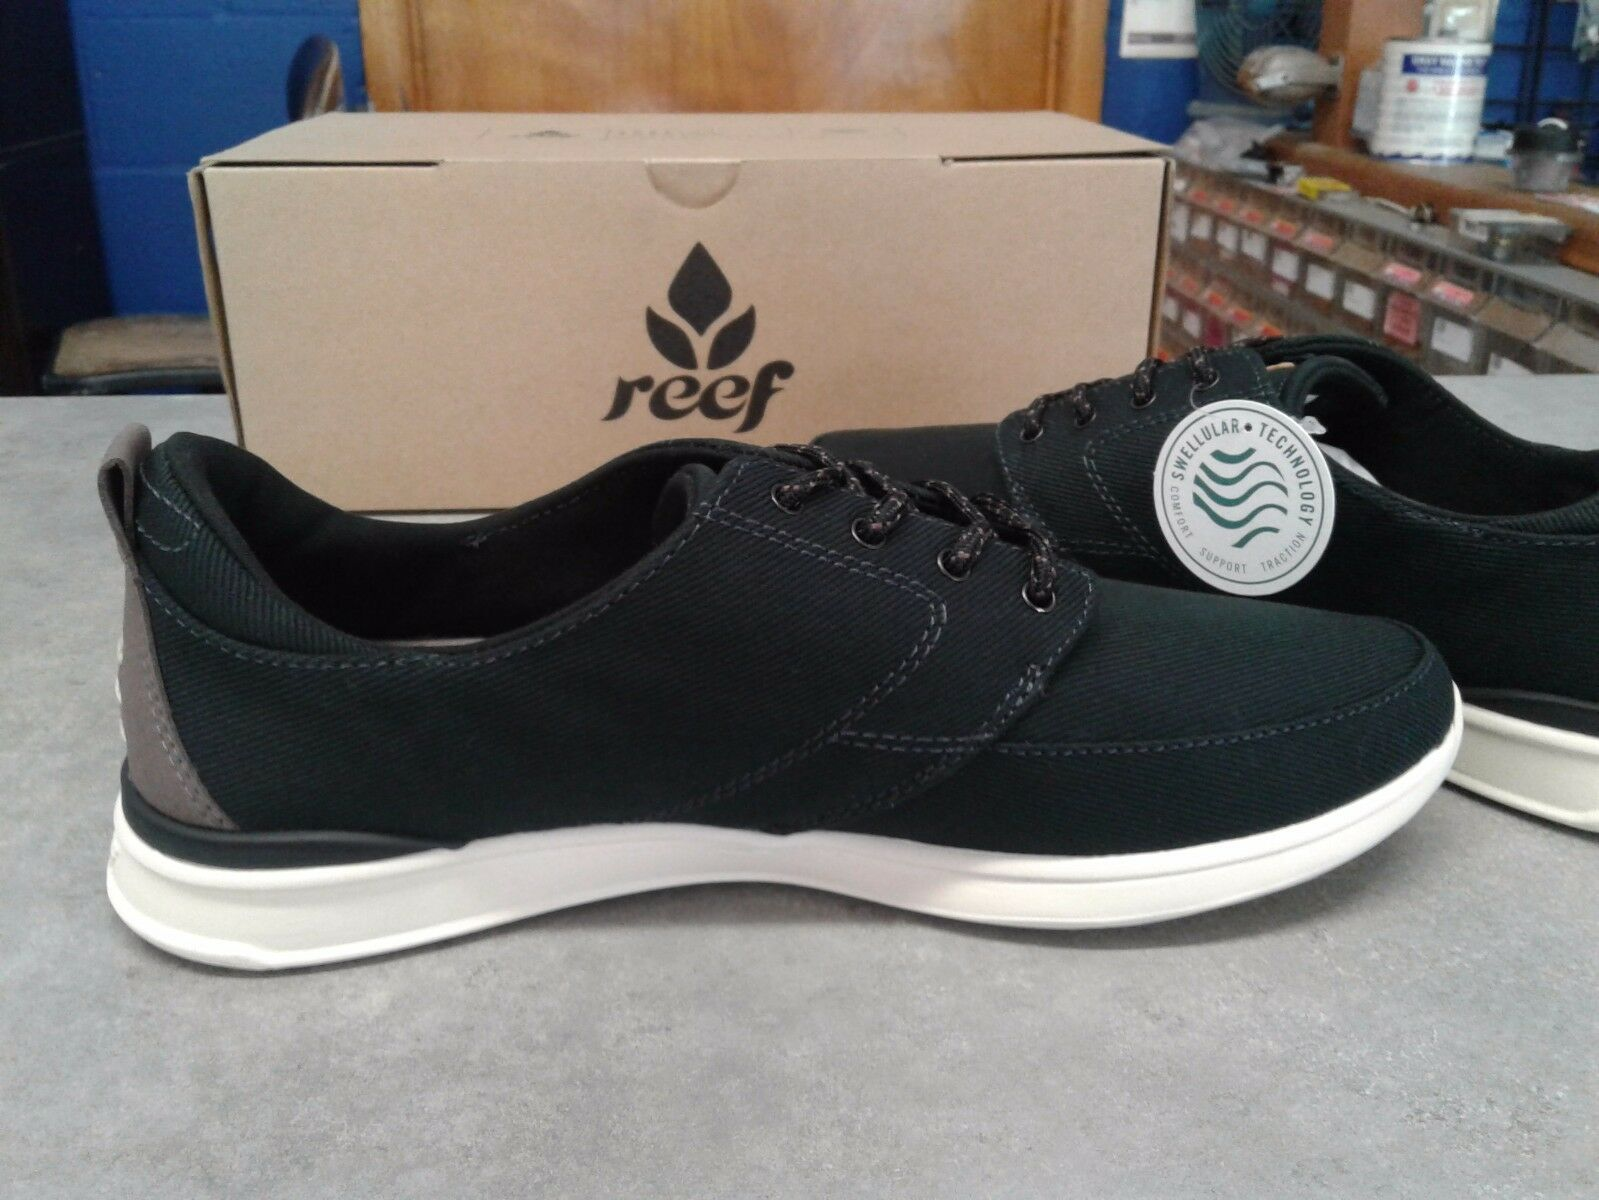 Reef Femmes Rover Basse Taille 9 Noir/Anthracite